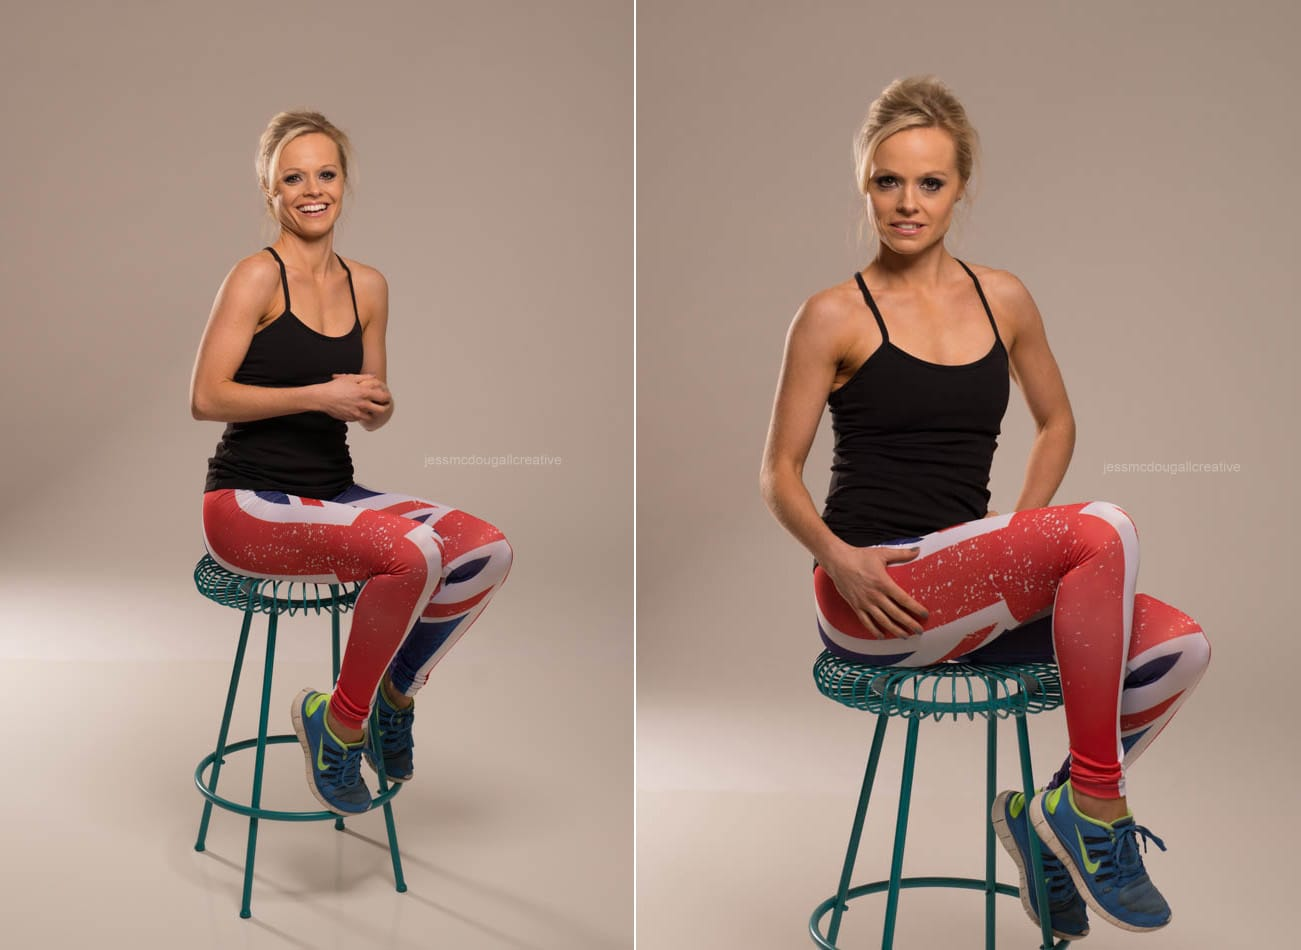 Lisa-Healey-Fitness-Andover-Personal-Trainer-Jess-McDougall-Creative-england-yoga-pants